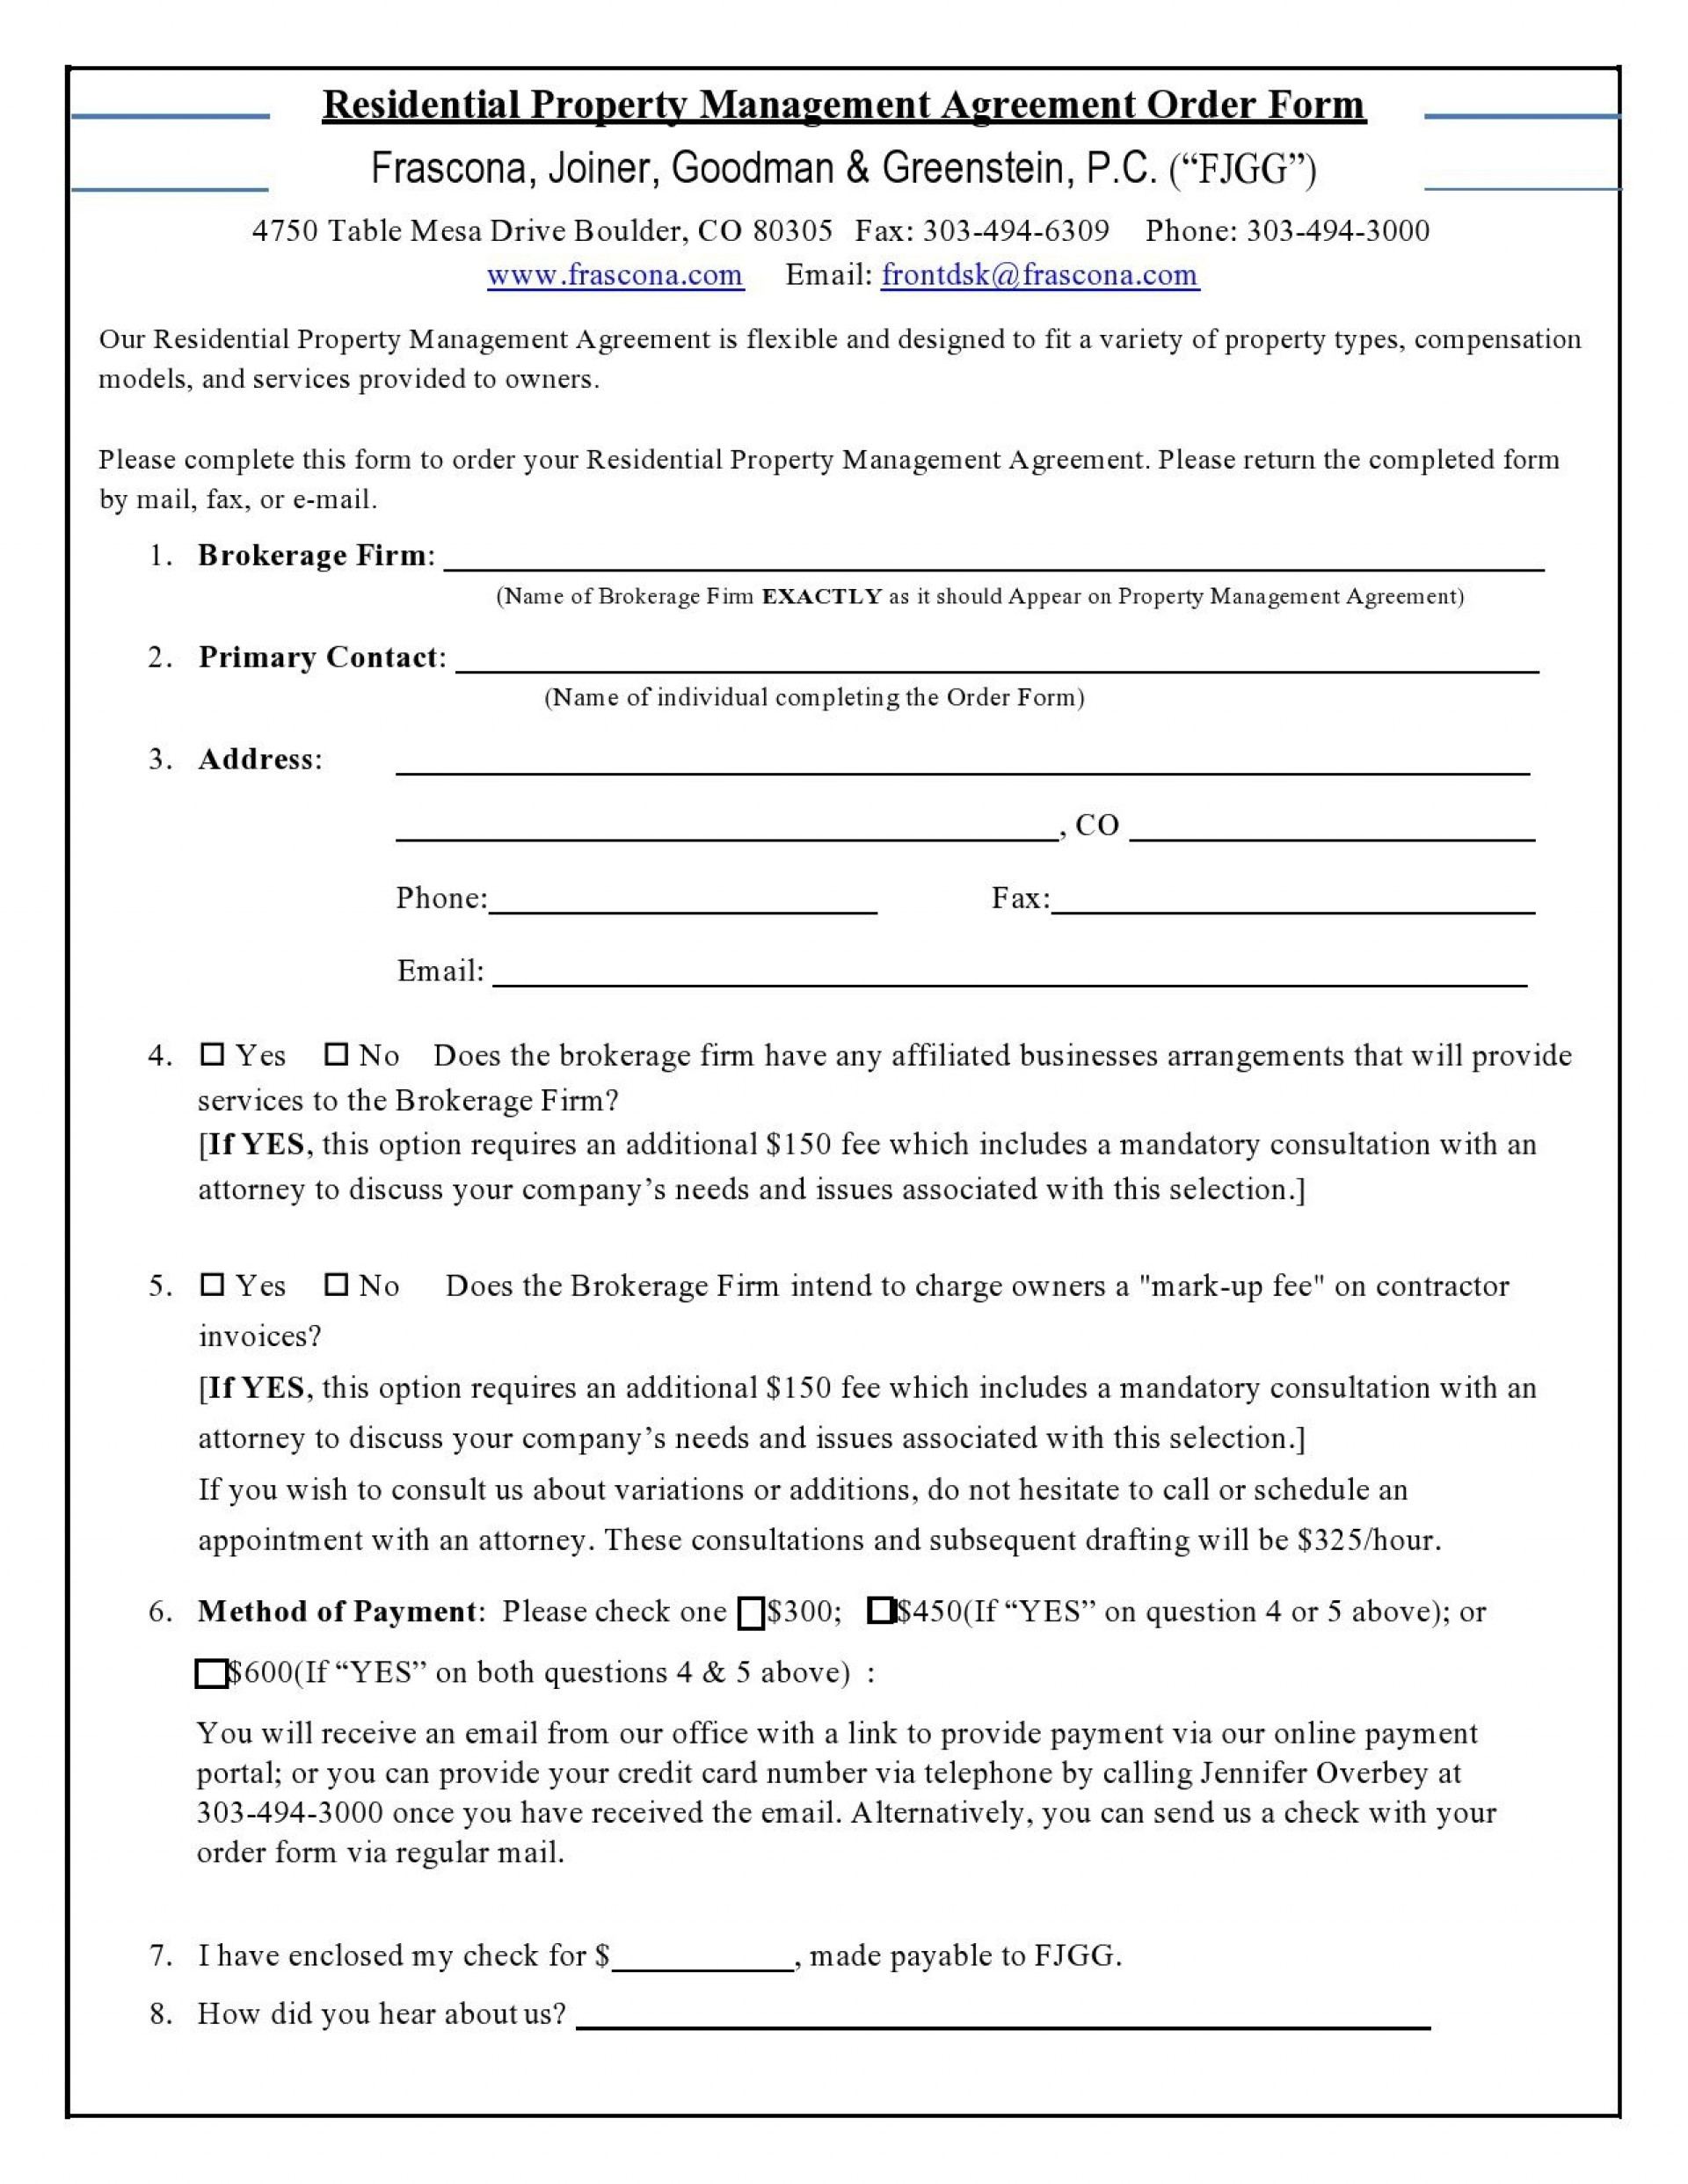 006 Breathtaking Property Management Agreement Template Ontario Inspiration  Contract1920